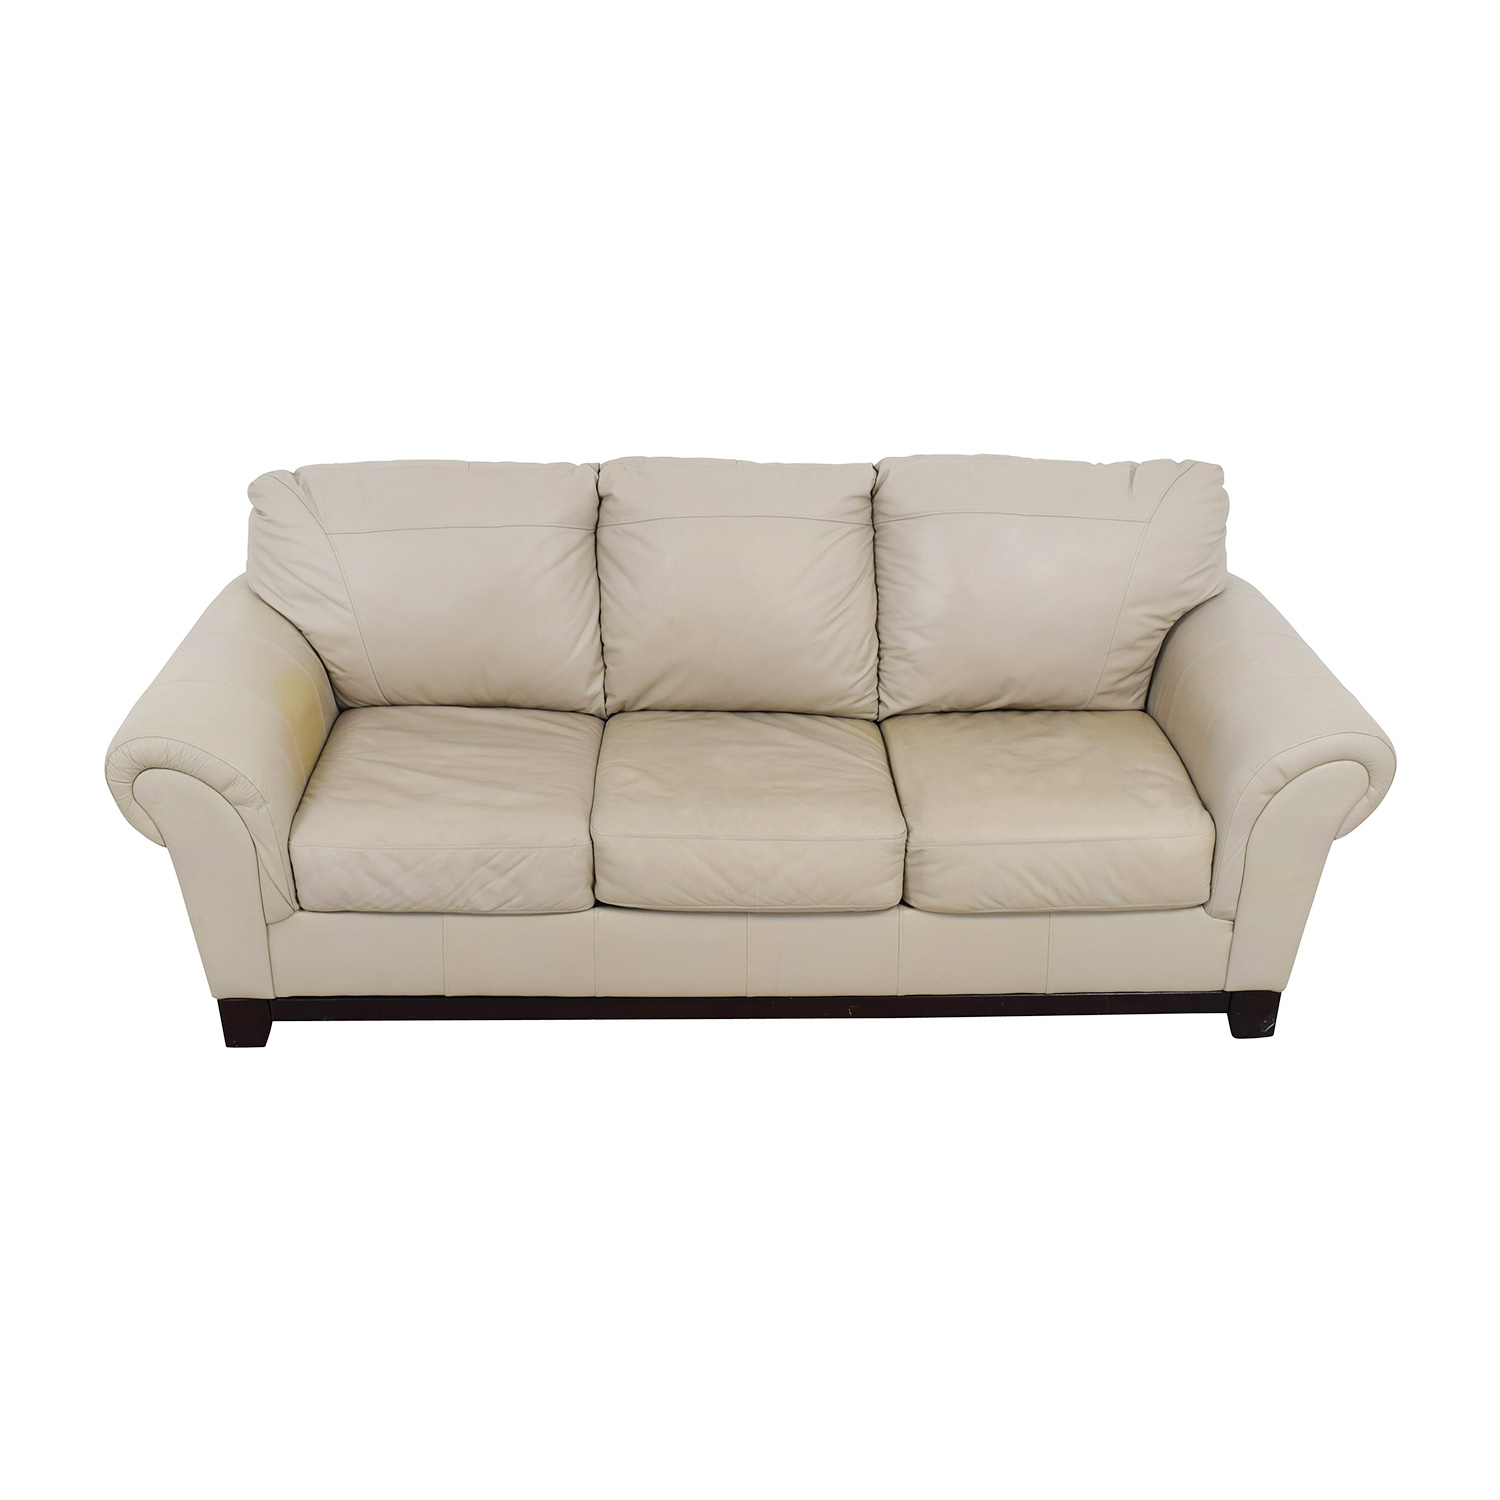 buy Taupe Leather Couch